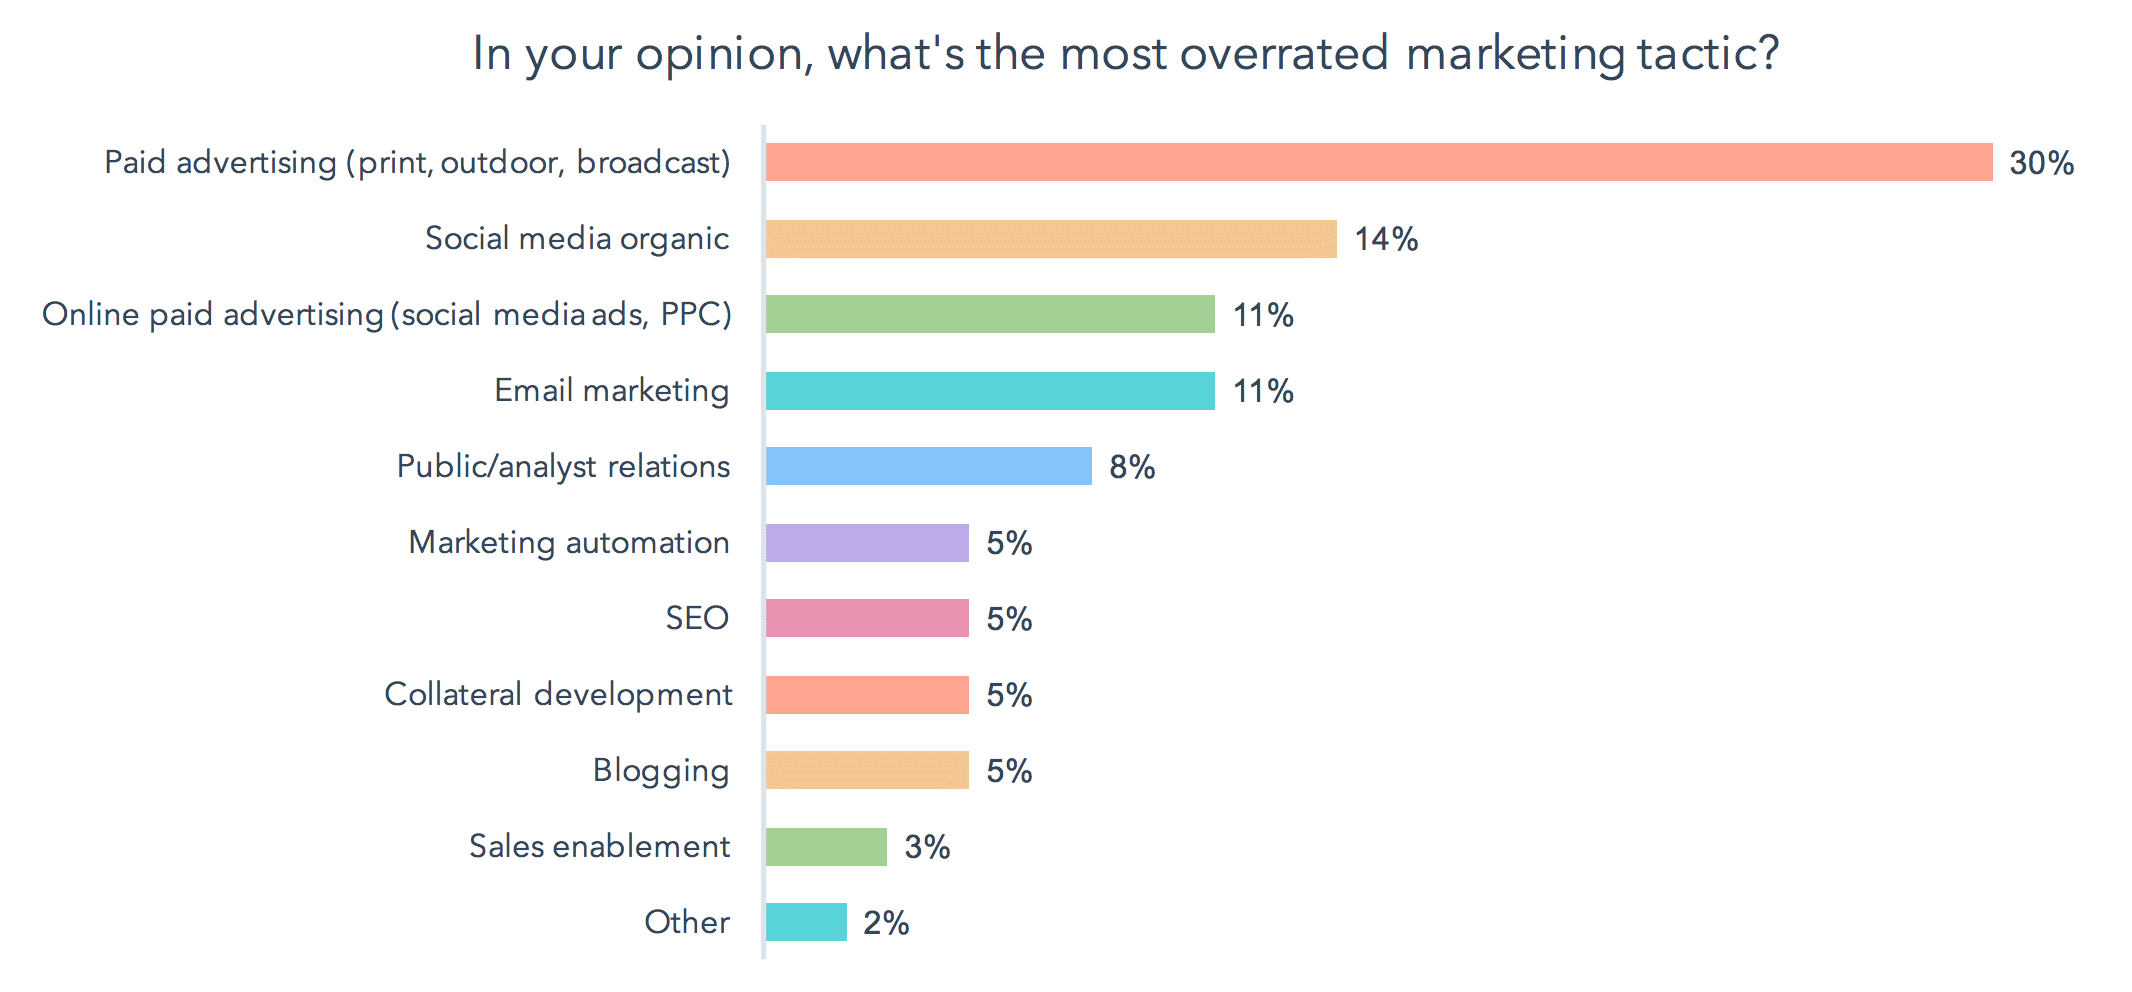 Marketers rate paid advertising as overrated